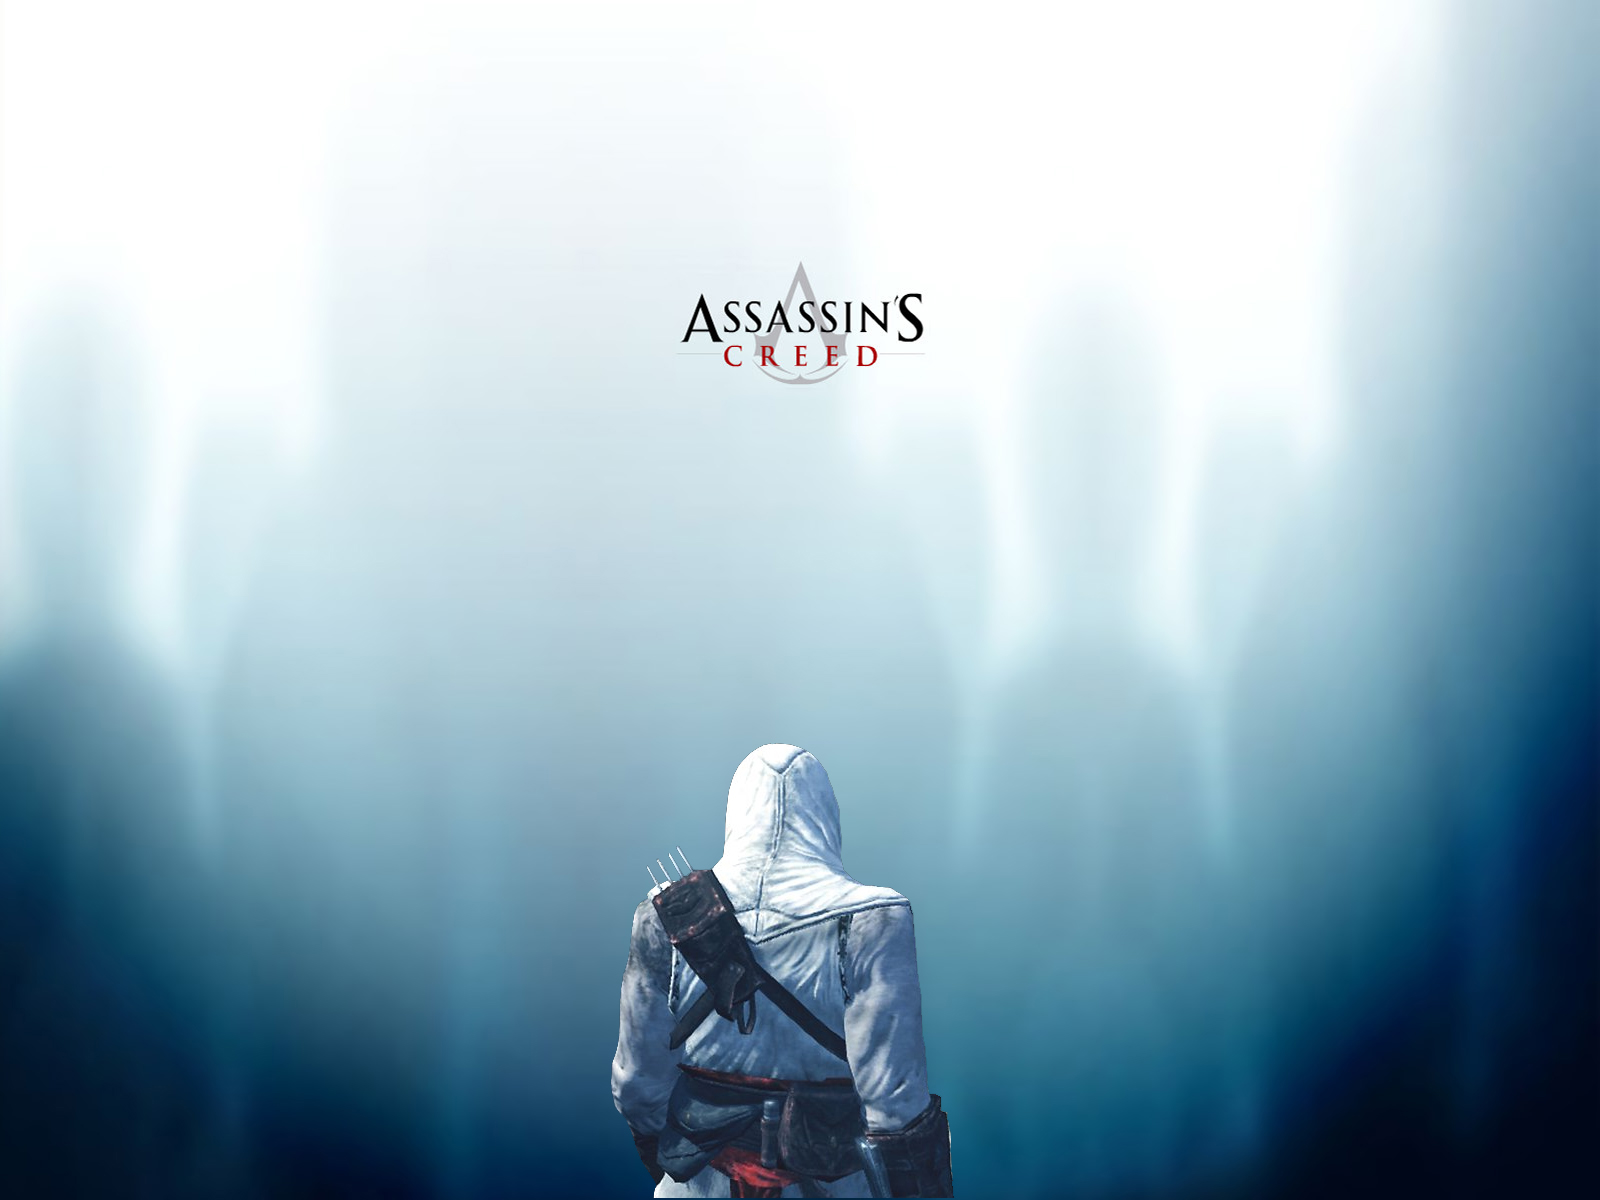 1066 Assassin's Creed HD Wallpapers | Backgrounds - Wallpaper